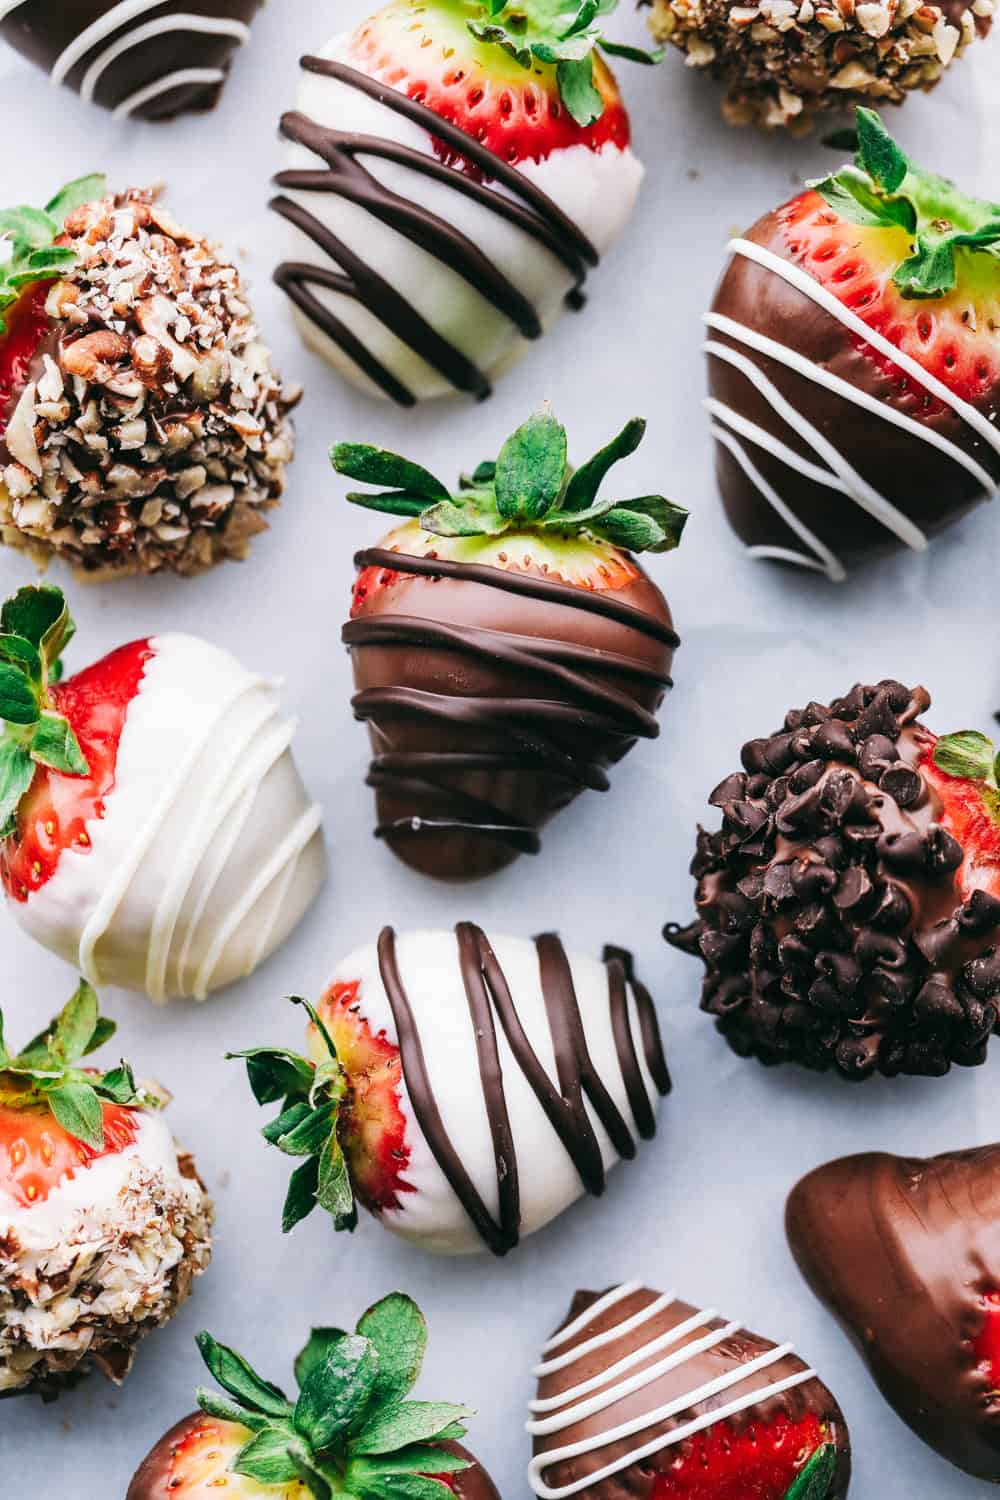 Best Chocolate Covered Strawberries Recipe How To Easily Make Them